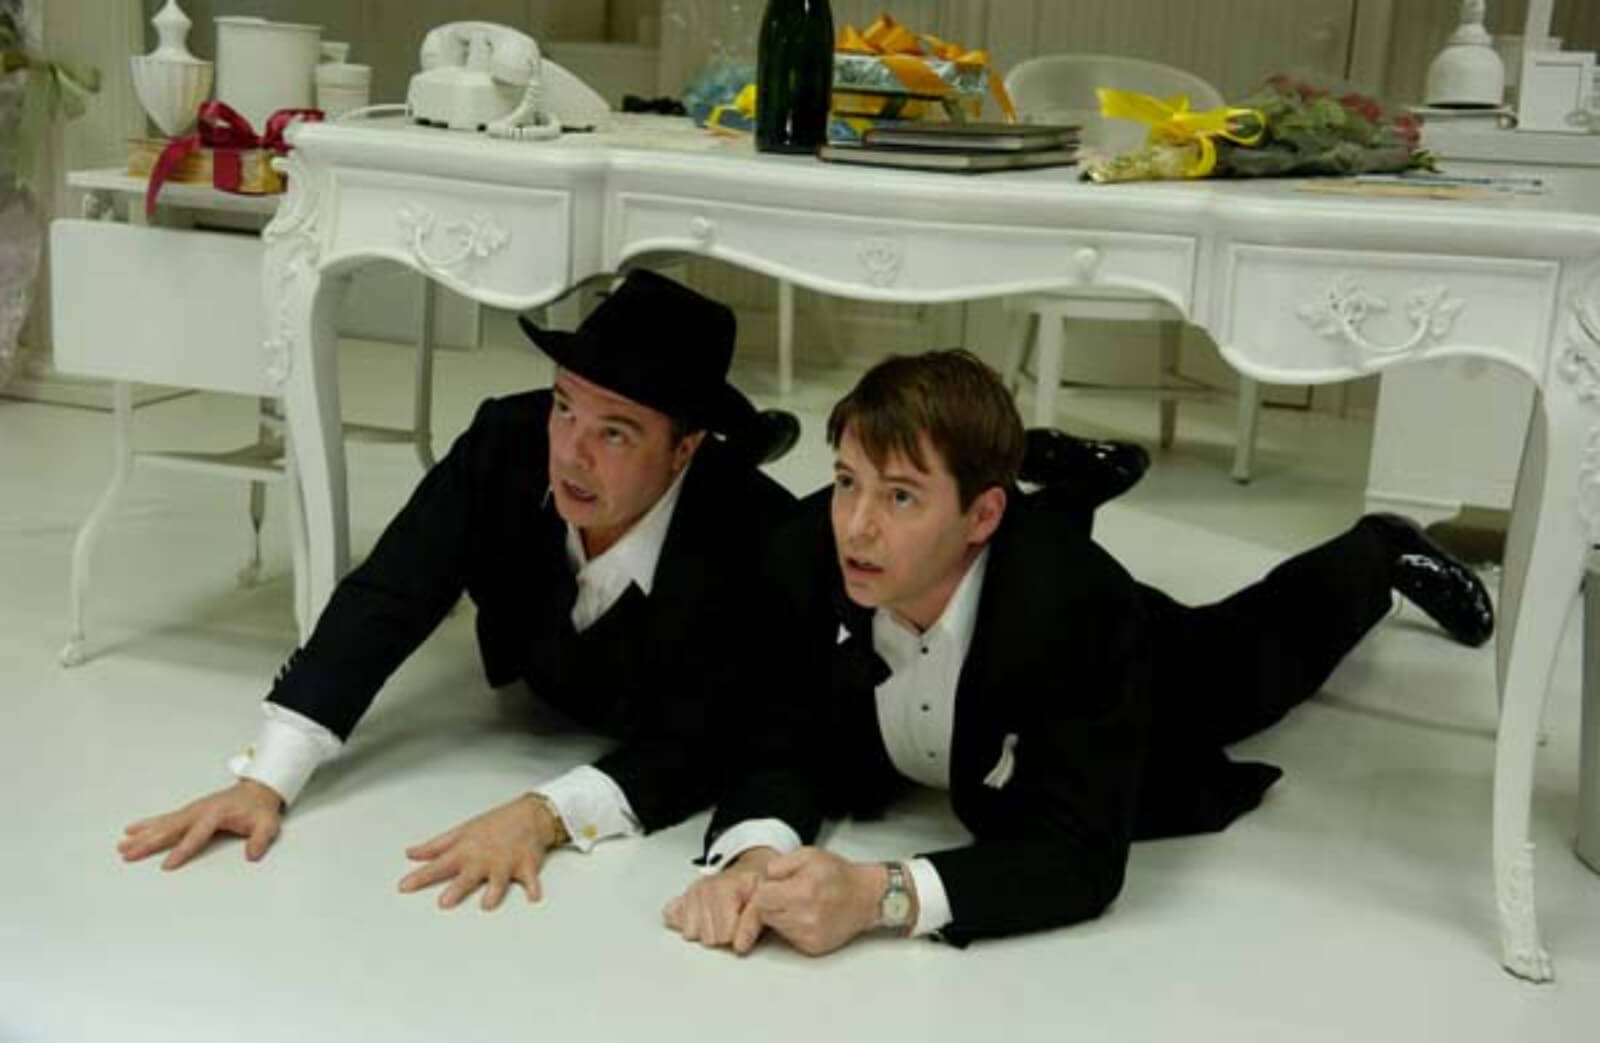 Max Bialystock (Nathan Lane) and Leo Bloom (Matthew Broderick) hiding under the desk.